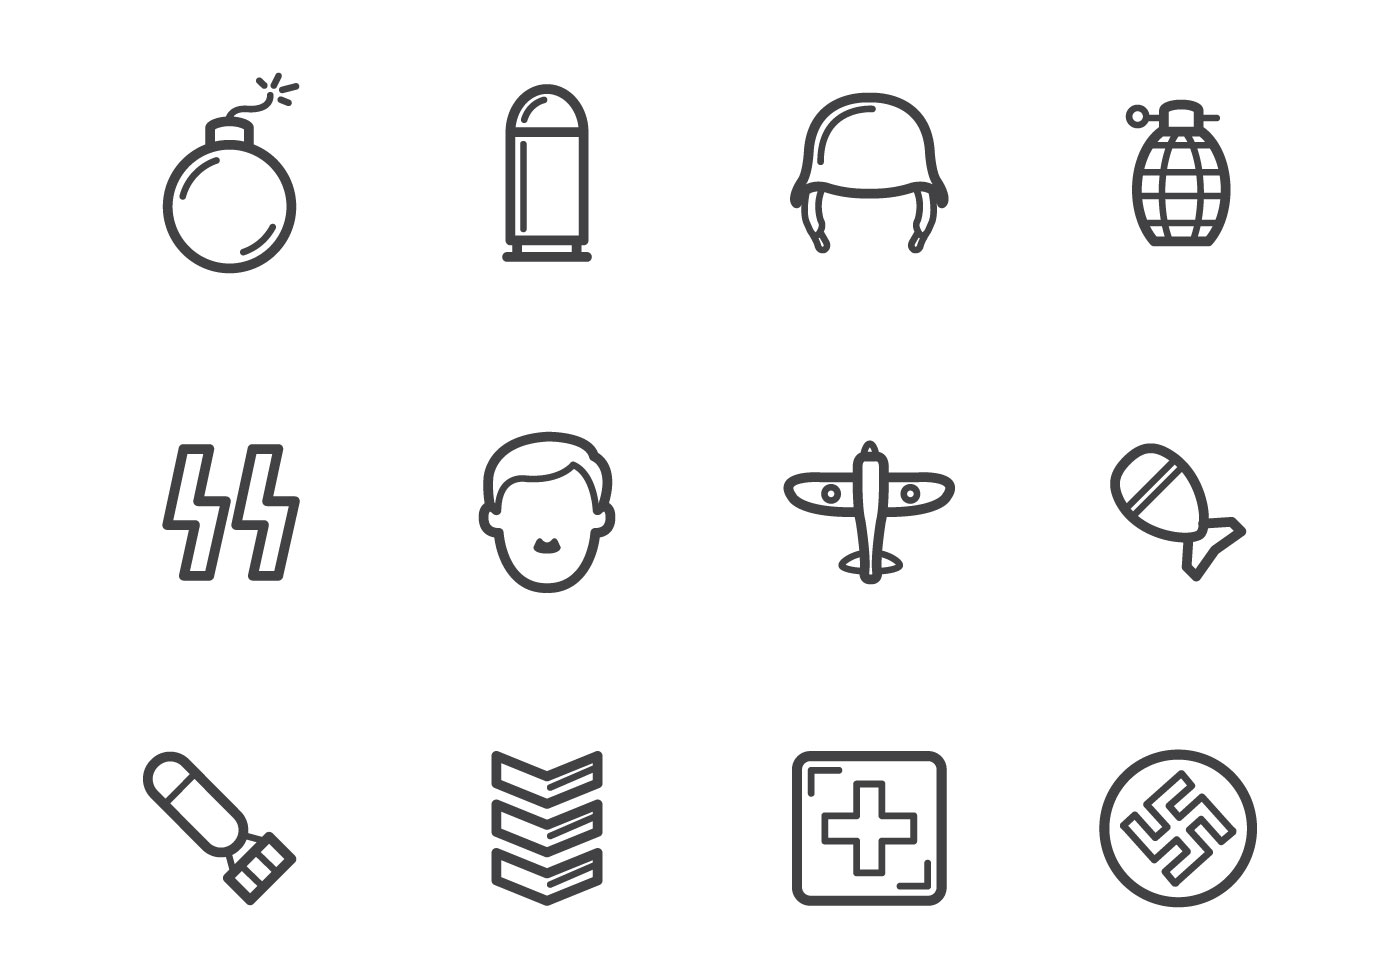 Free world war 2 icons download free vector art stock graphics free world war 2 icons download free vector art stock graphics images buycottarizona Image collections